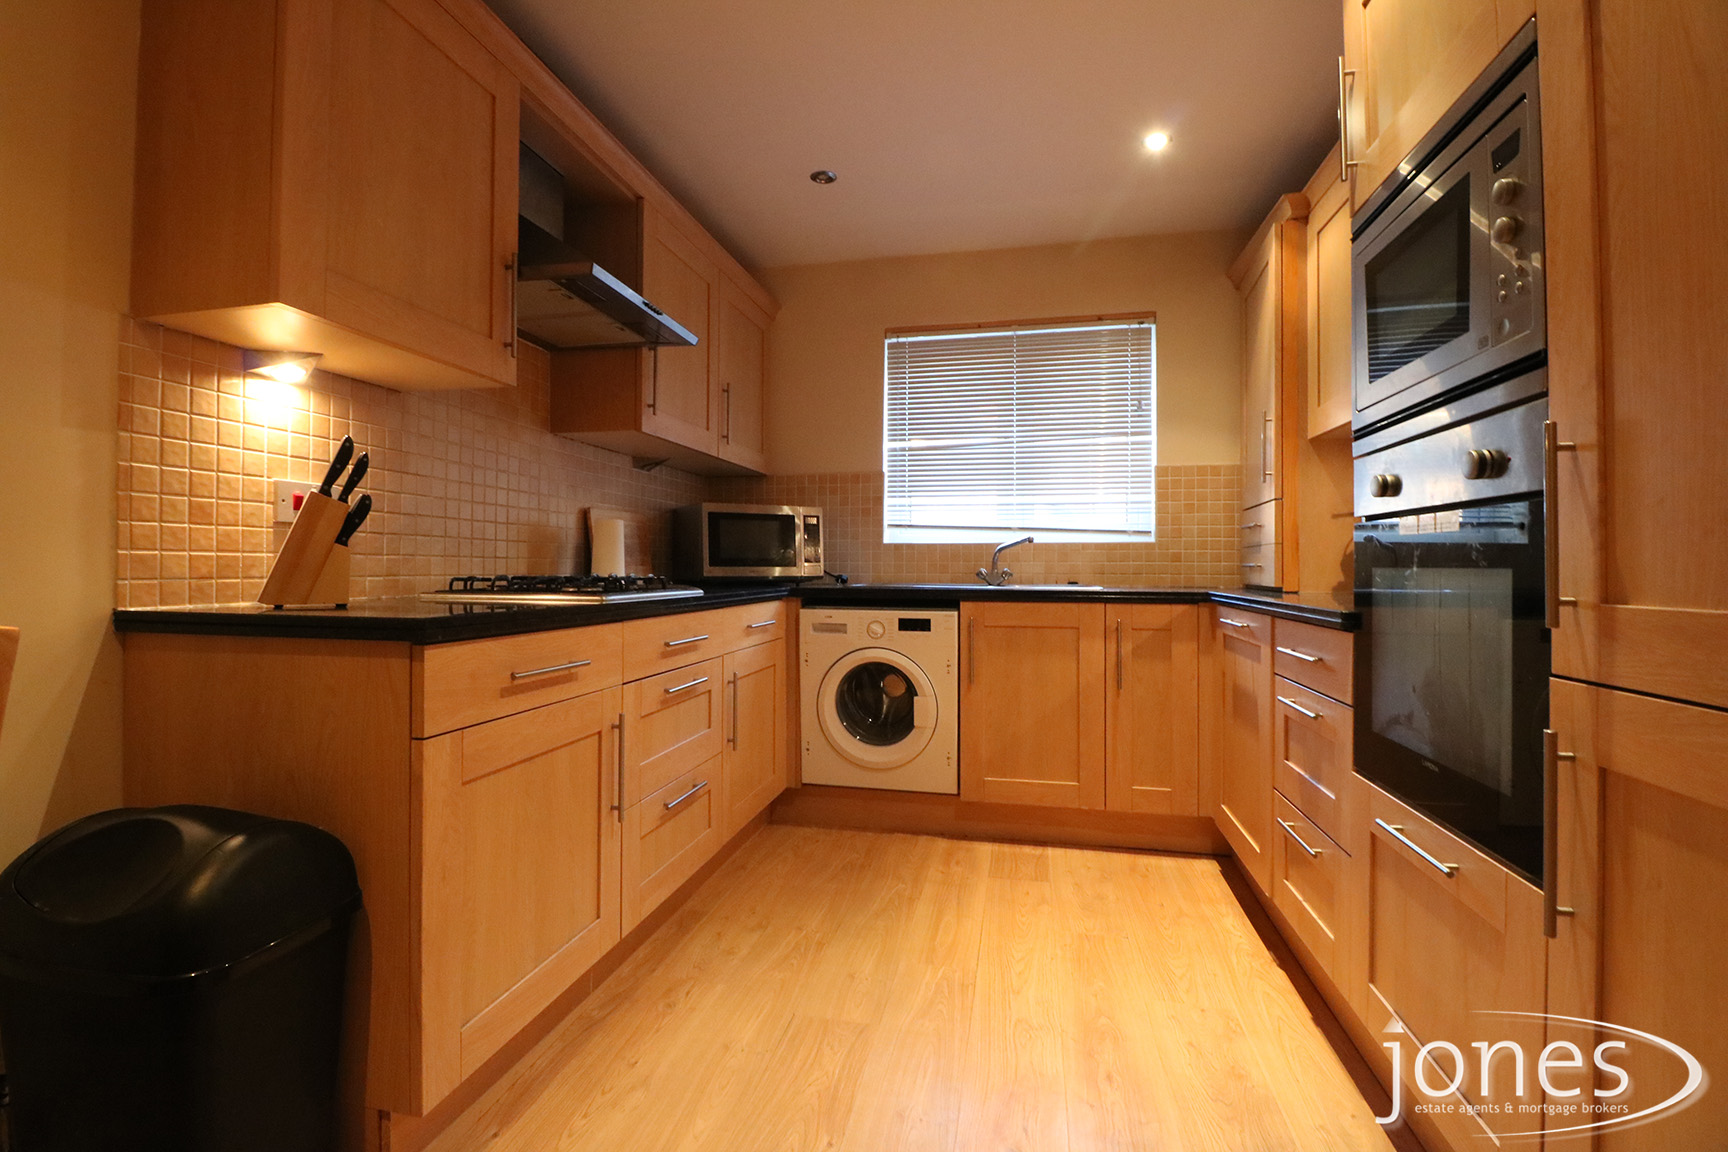 Home for Sale Let - Photo 06 Chart House, Admiral Way,Hartlepool Marina, Hartlepool TS24 0WB